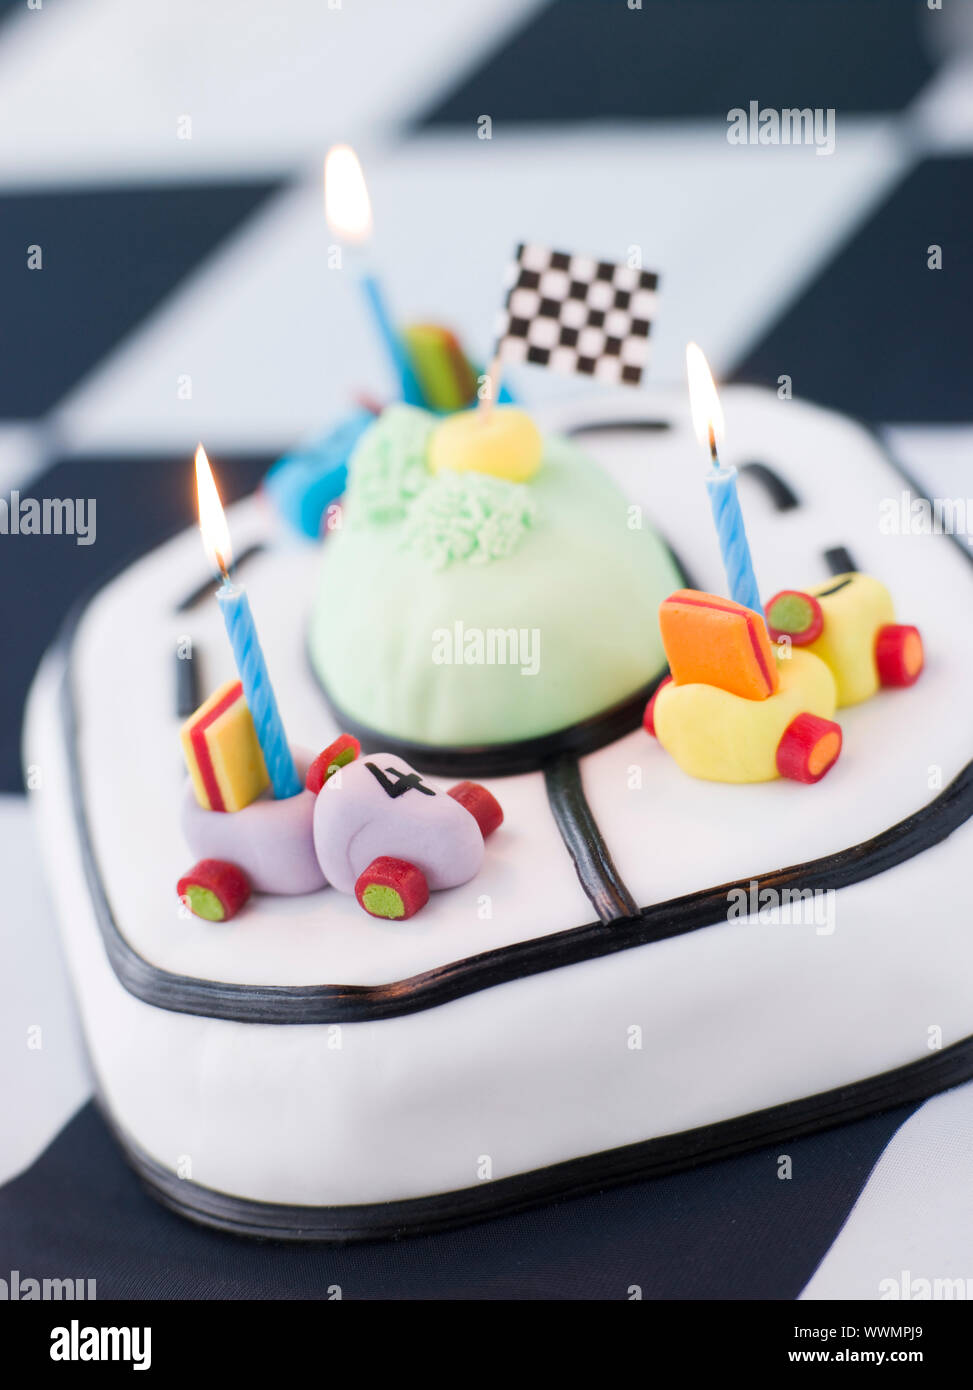 For the roof of the car, cut the front windshield part on a slight angle. Car Cake High Resolution Stock Photography And Images Alamy